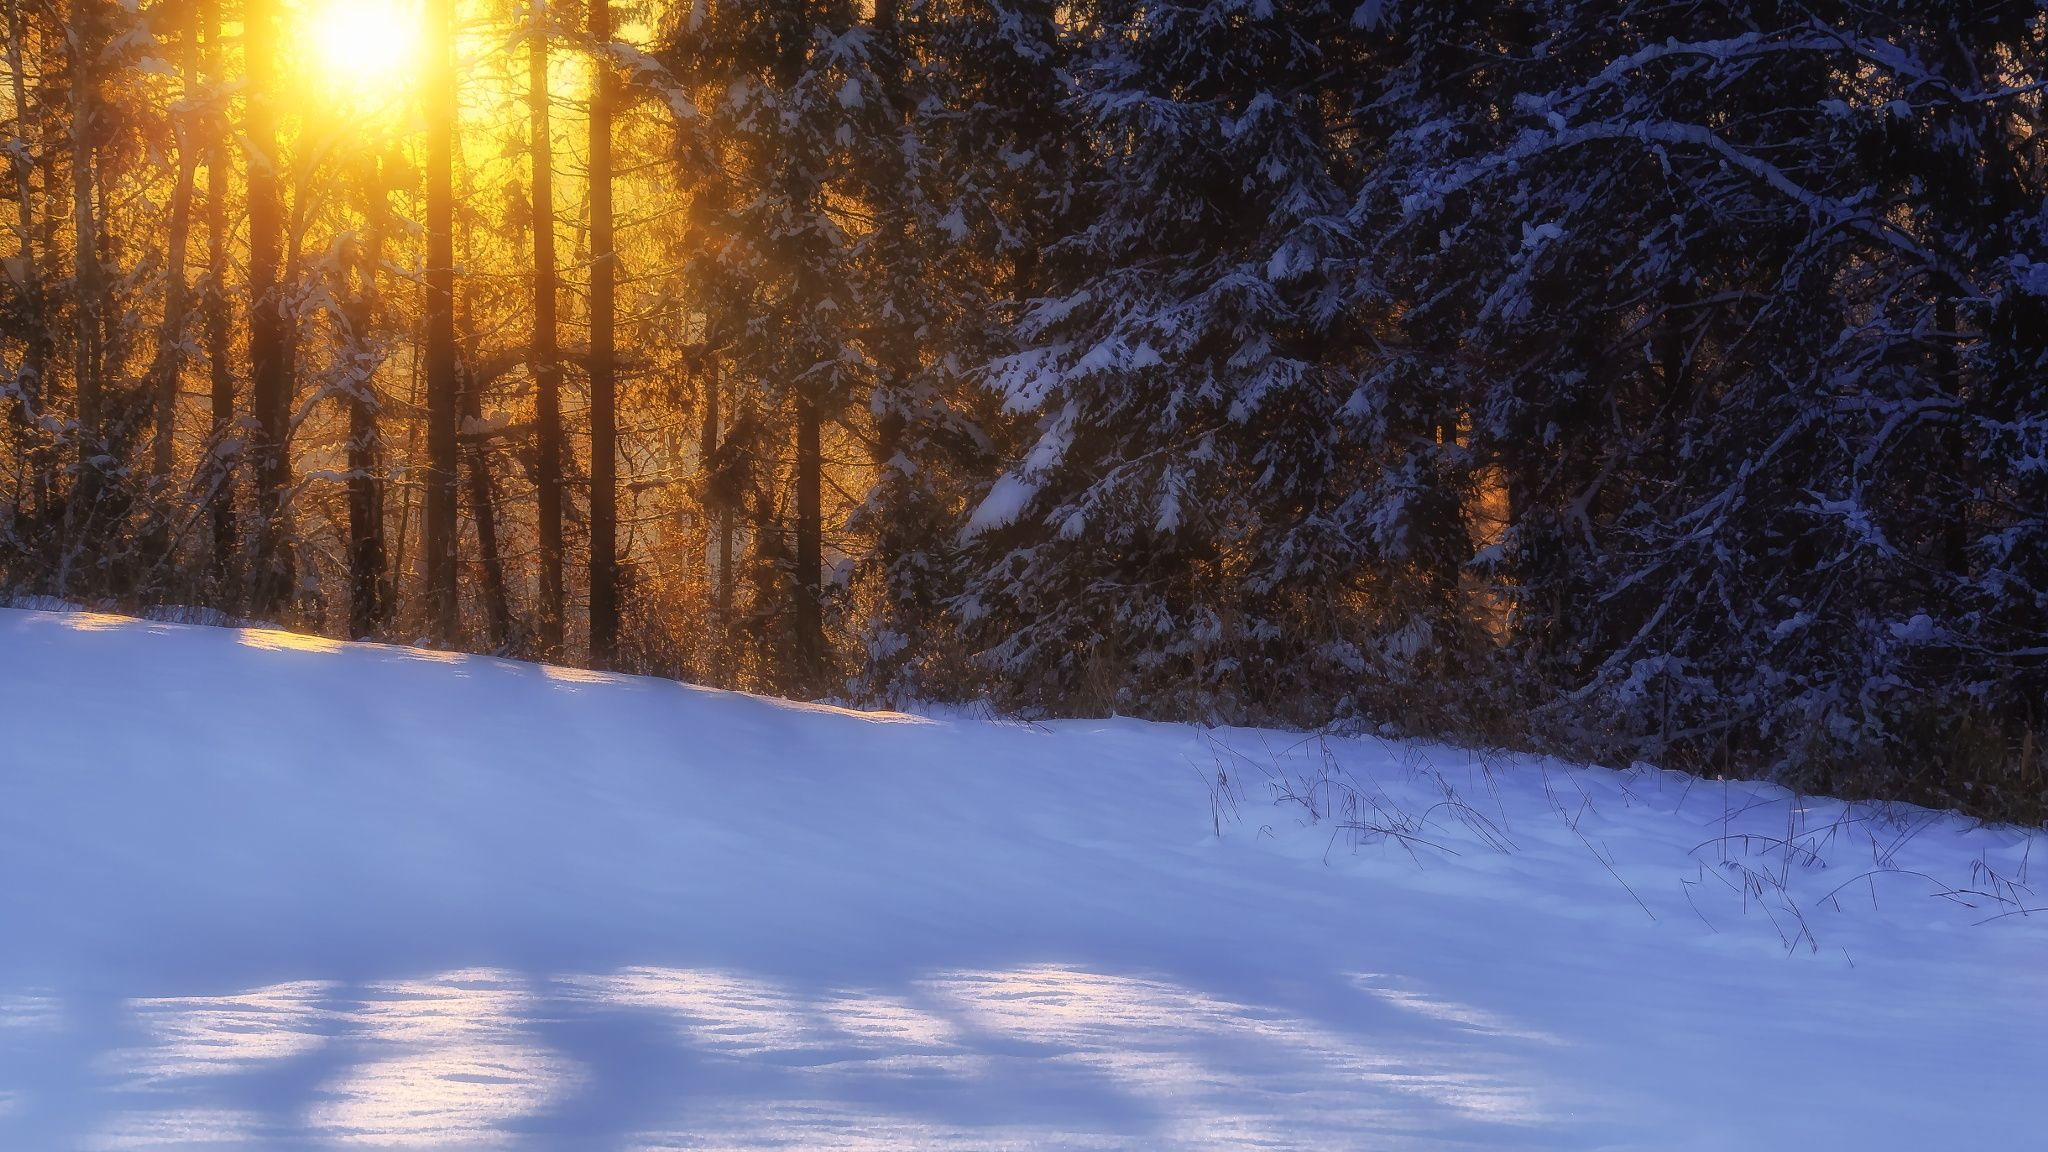 hot and cold by Helmut R. Kahr on 500px